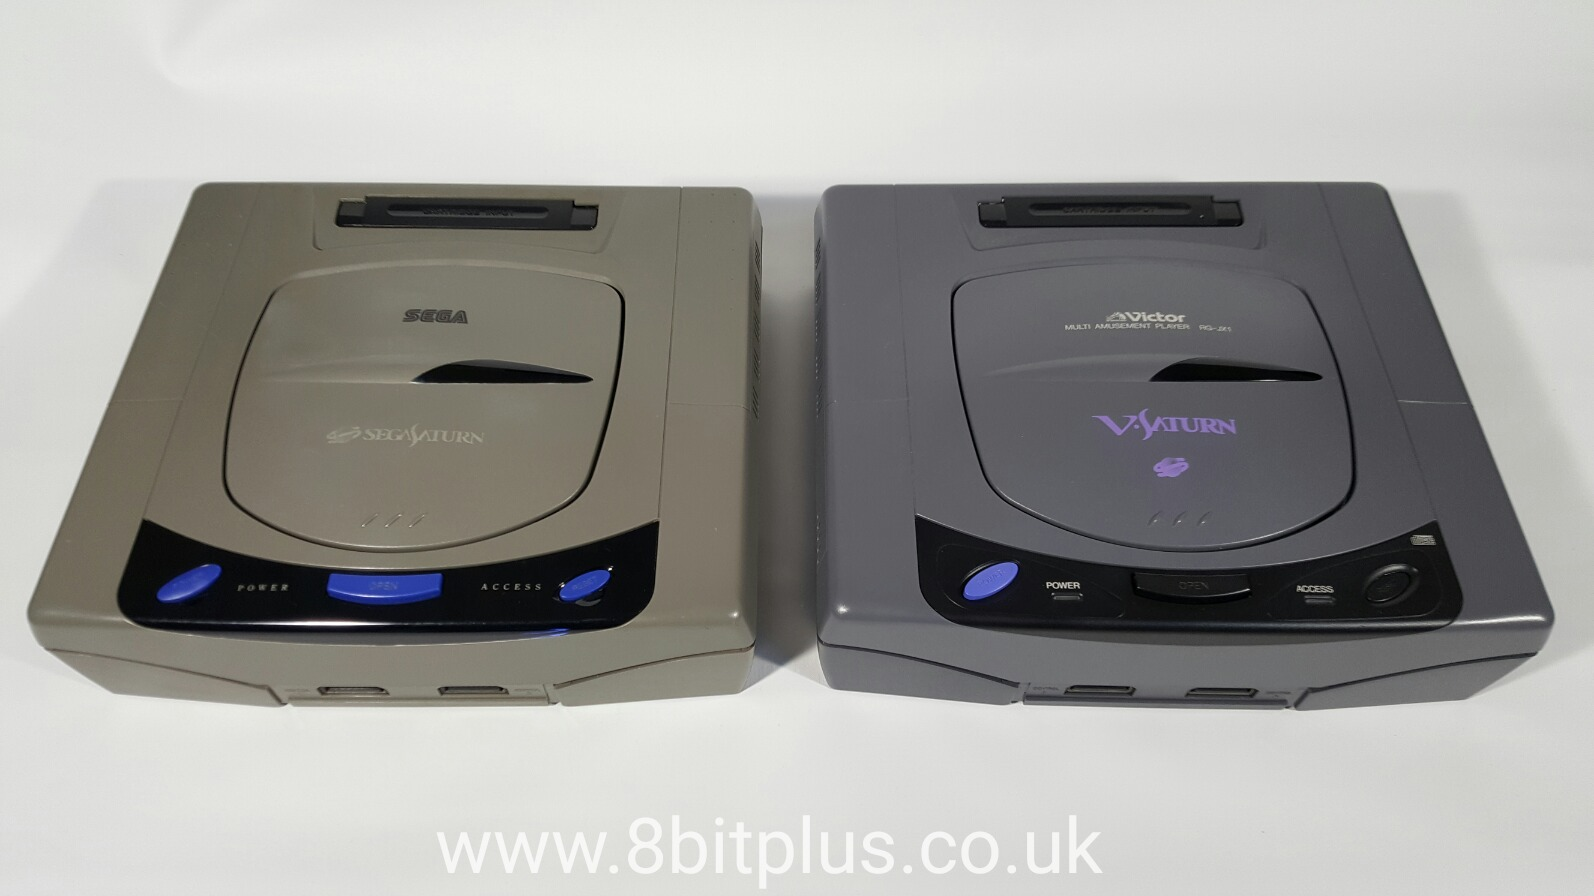 Victor V Saturn Rg Jx1 And Rg Jx2 8bitplus